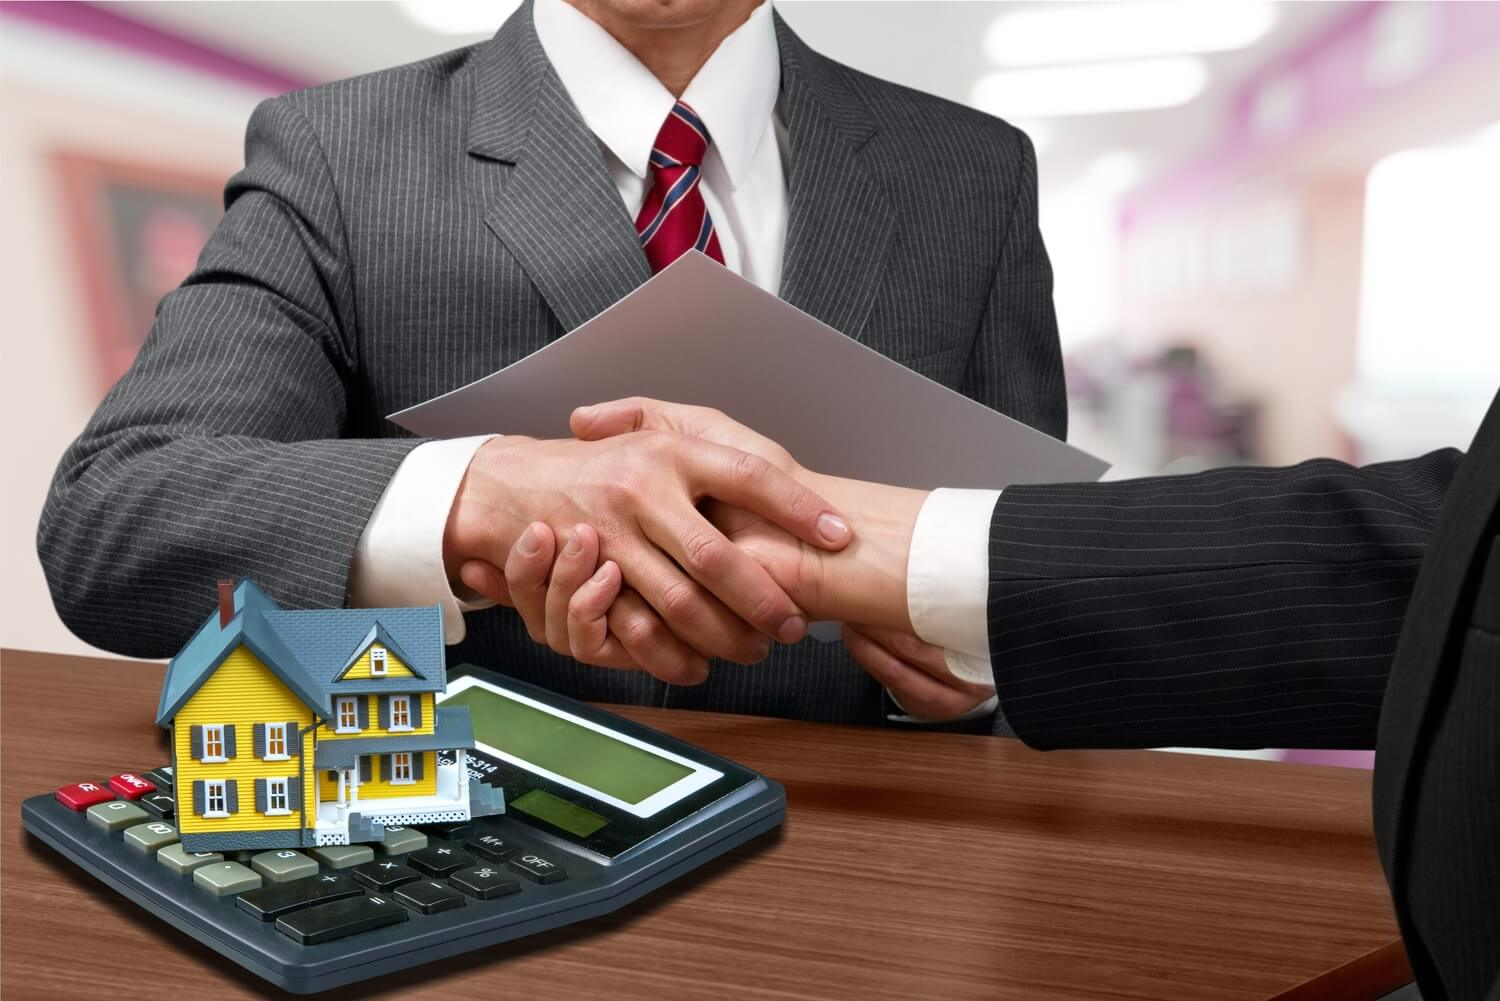 Who Should Refinance Their Mortgage